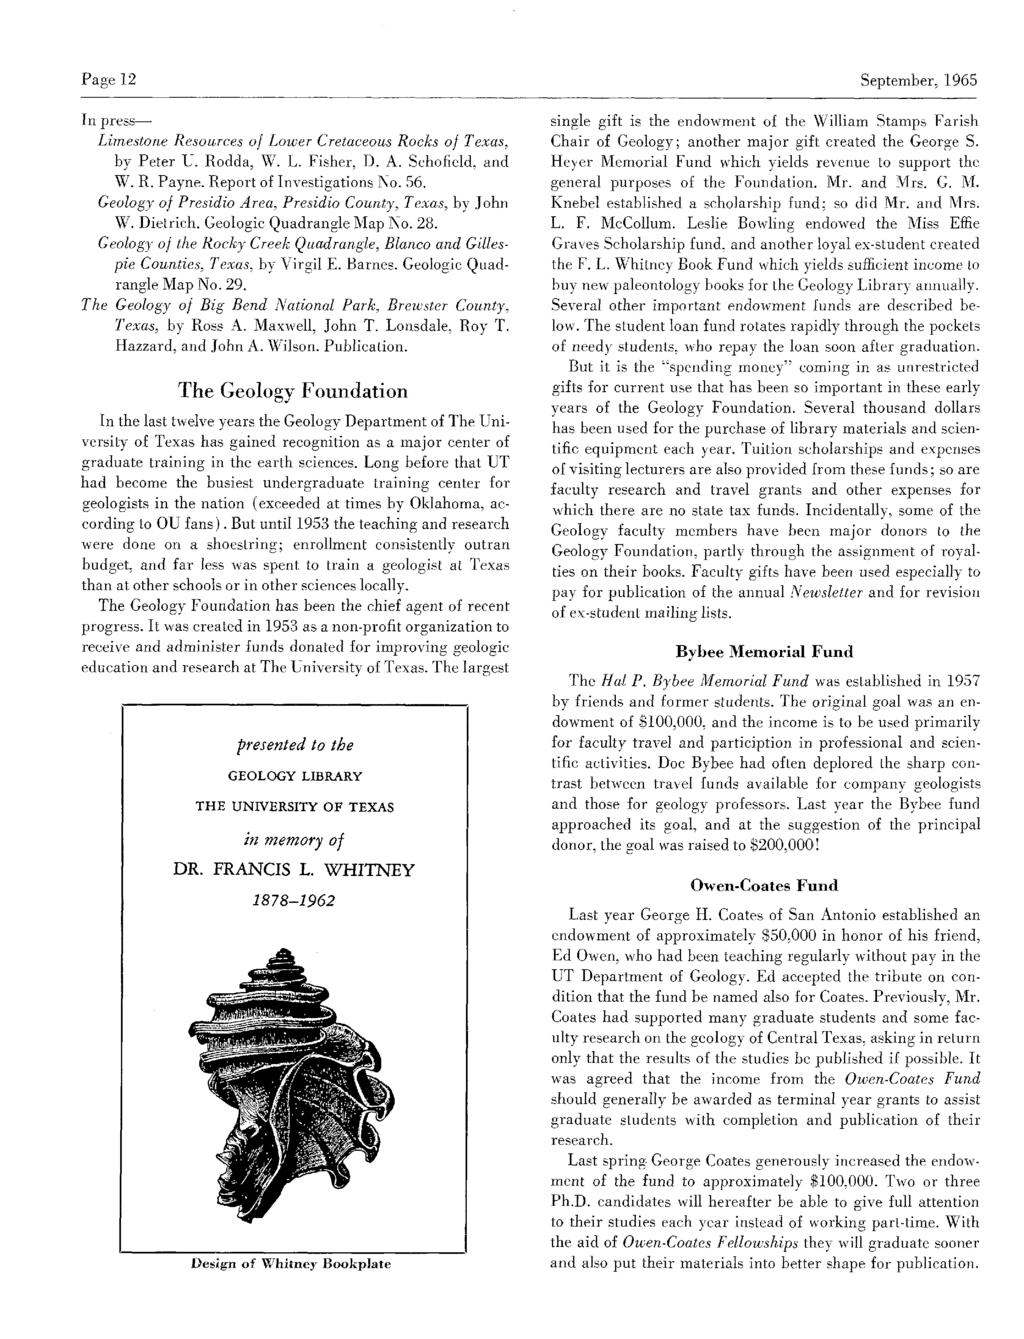 Page 12 September, 1965 Inpress Limestone Resources of Lower Cretaceous Rocks of Texas, by Peter U. Rodda, W. L. Fisher, D.A. Schofield, and W.R.Payne.Reportof InvestigationsNo. 56.